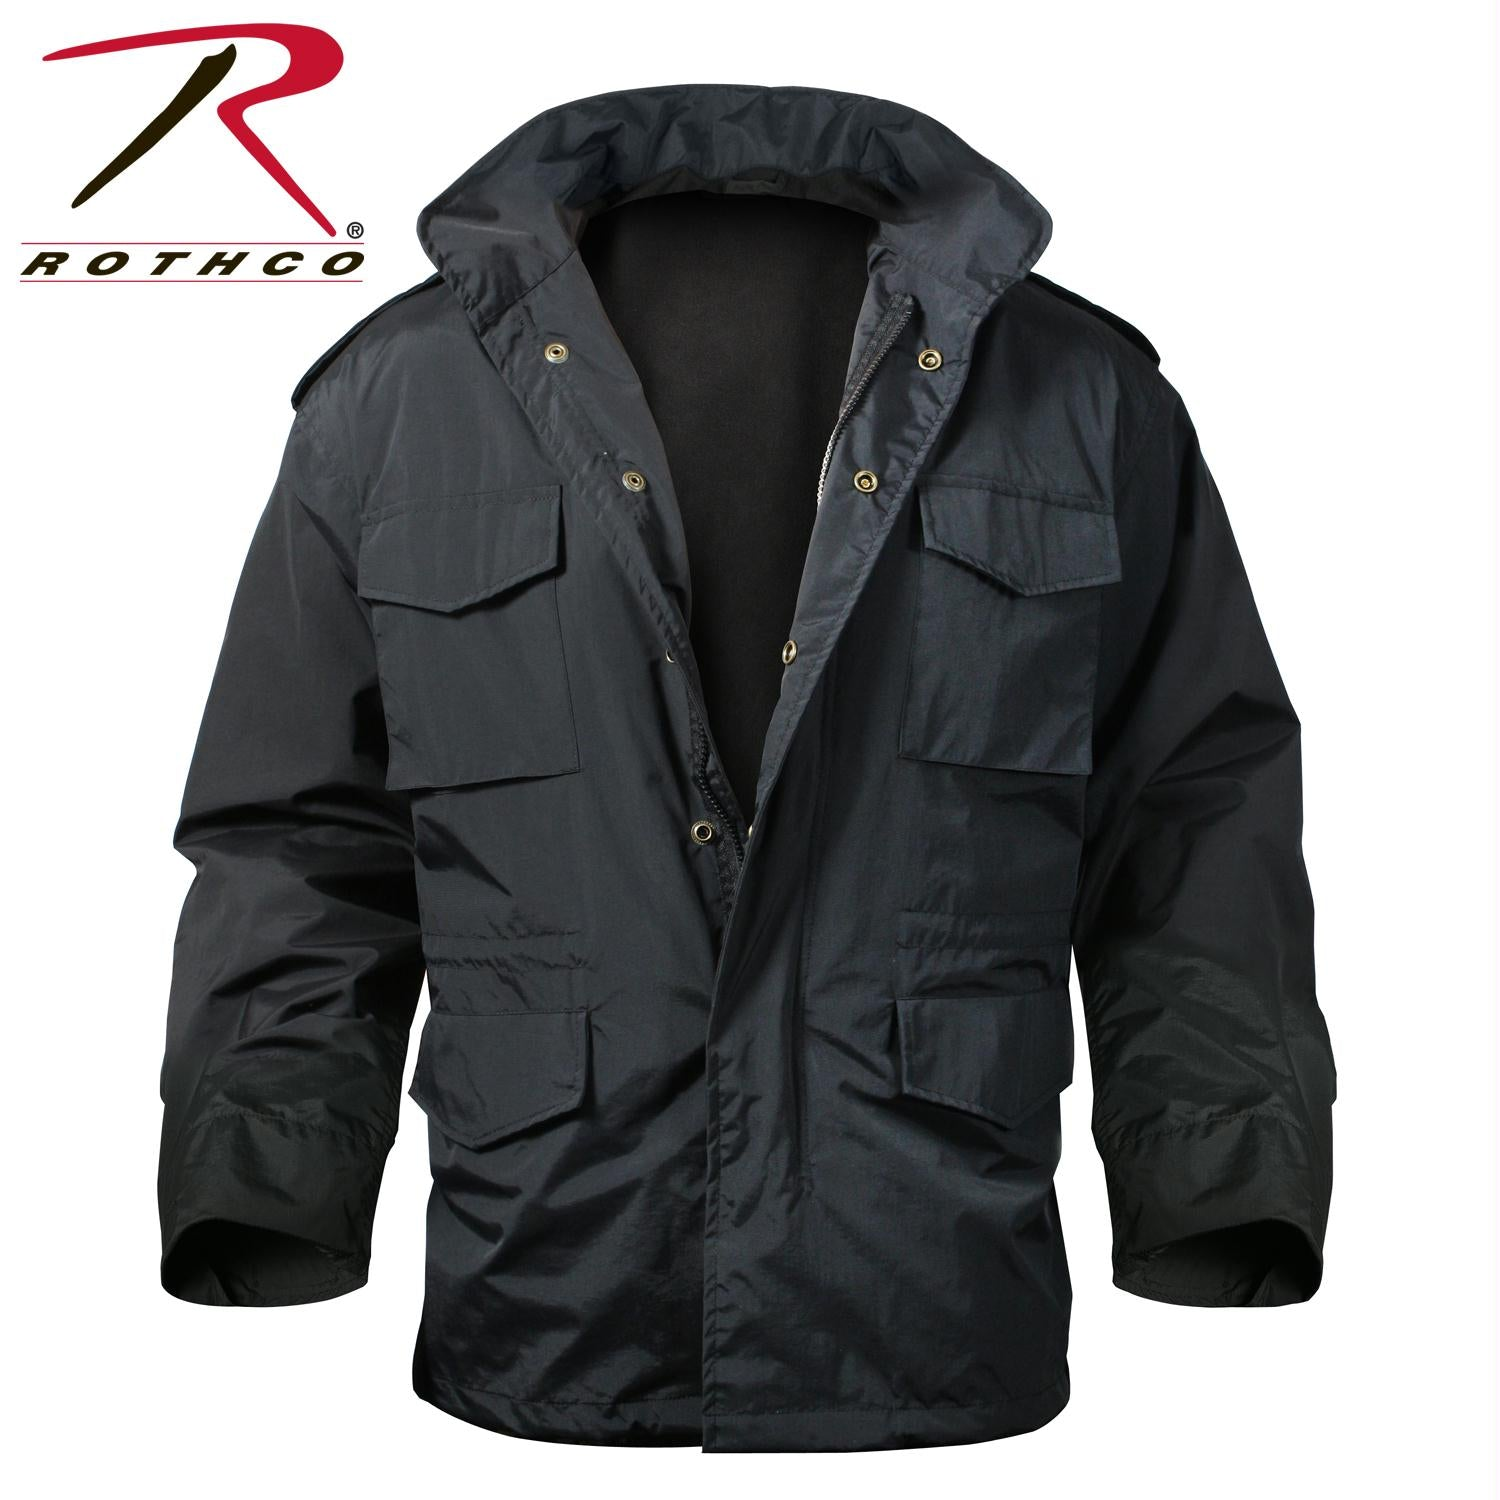 Rothco M-65 Storm Jacket - L